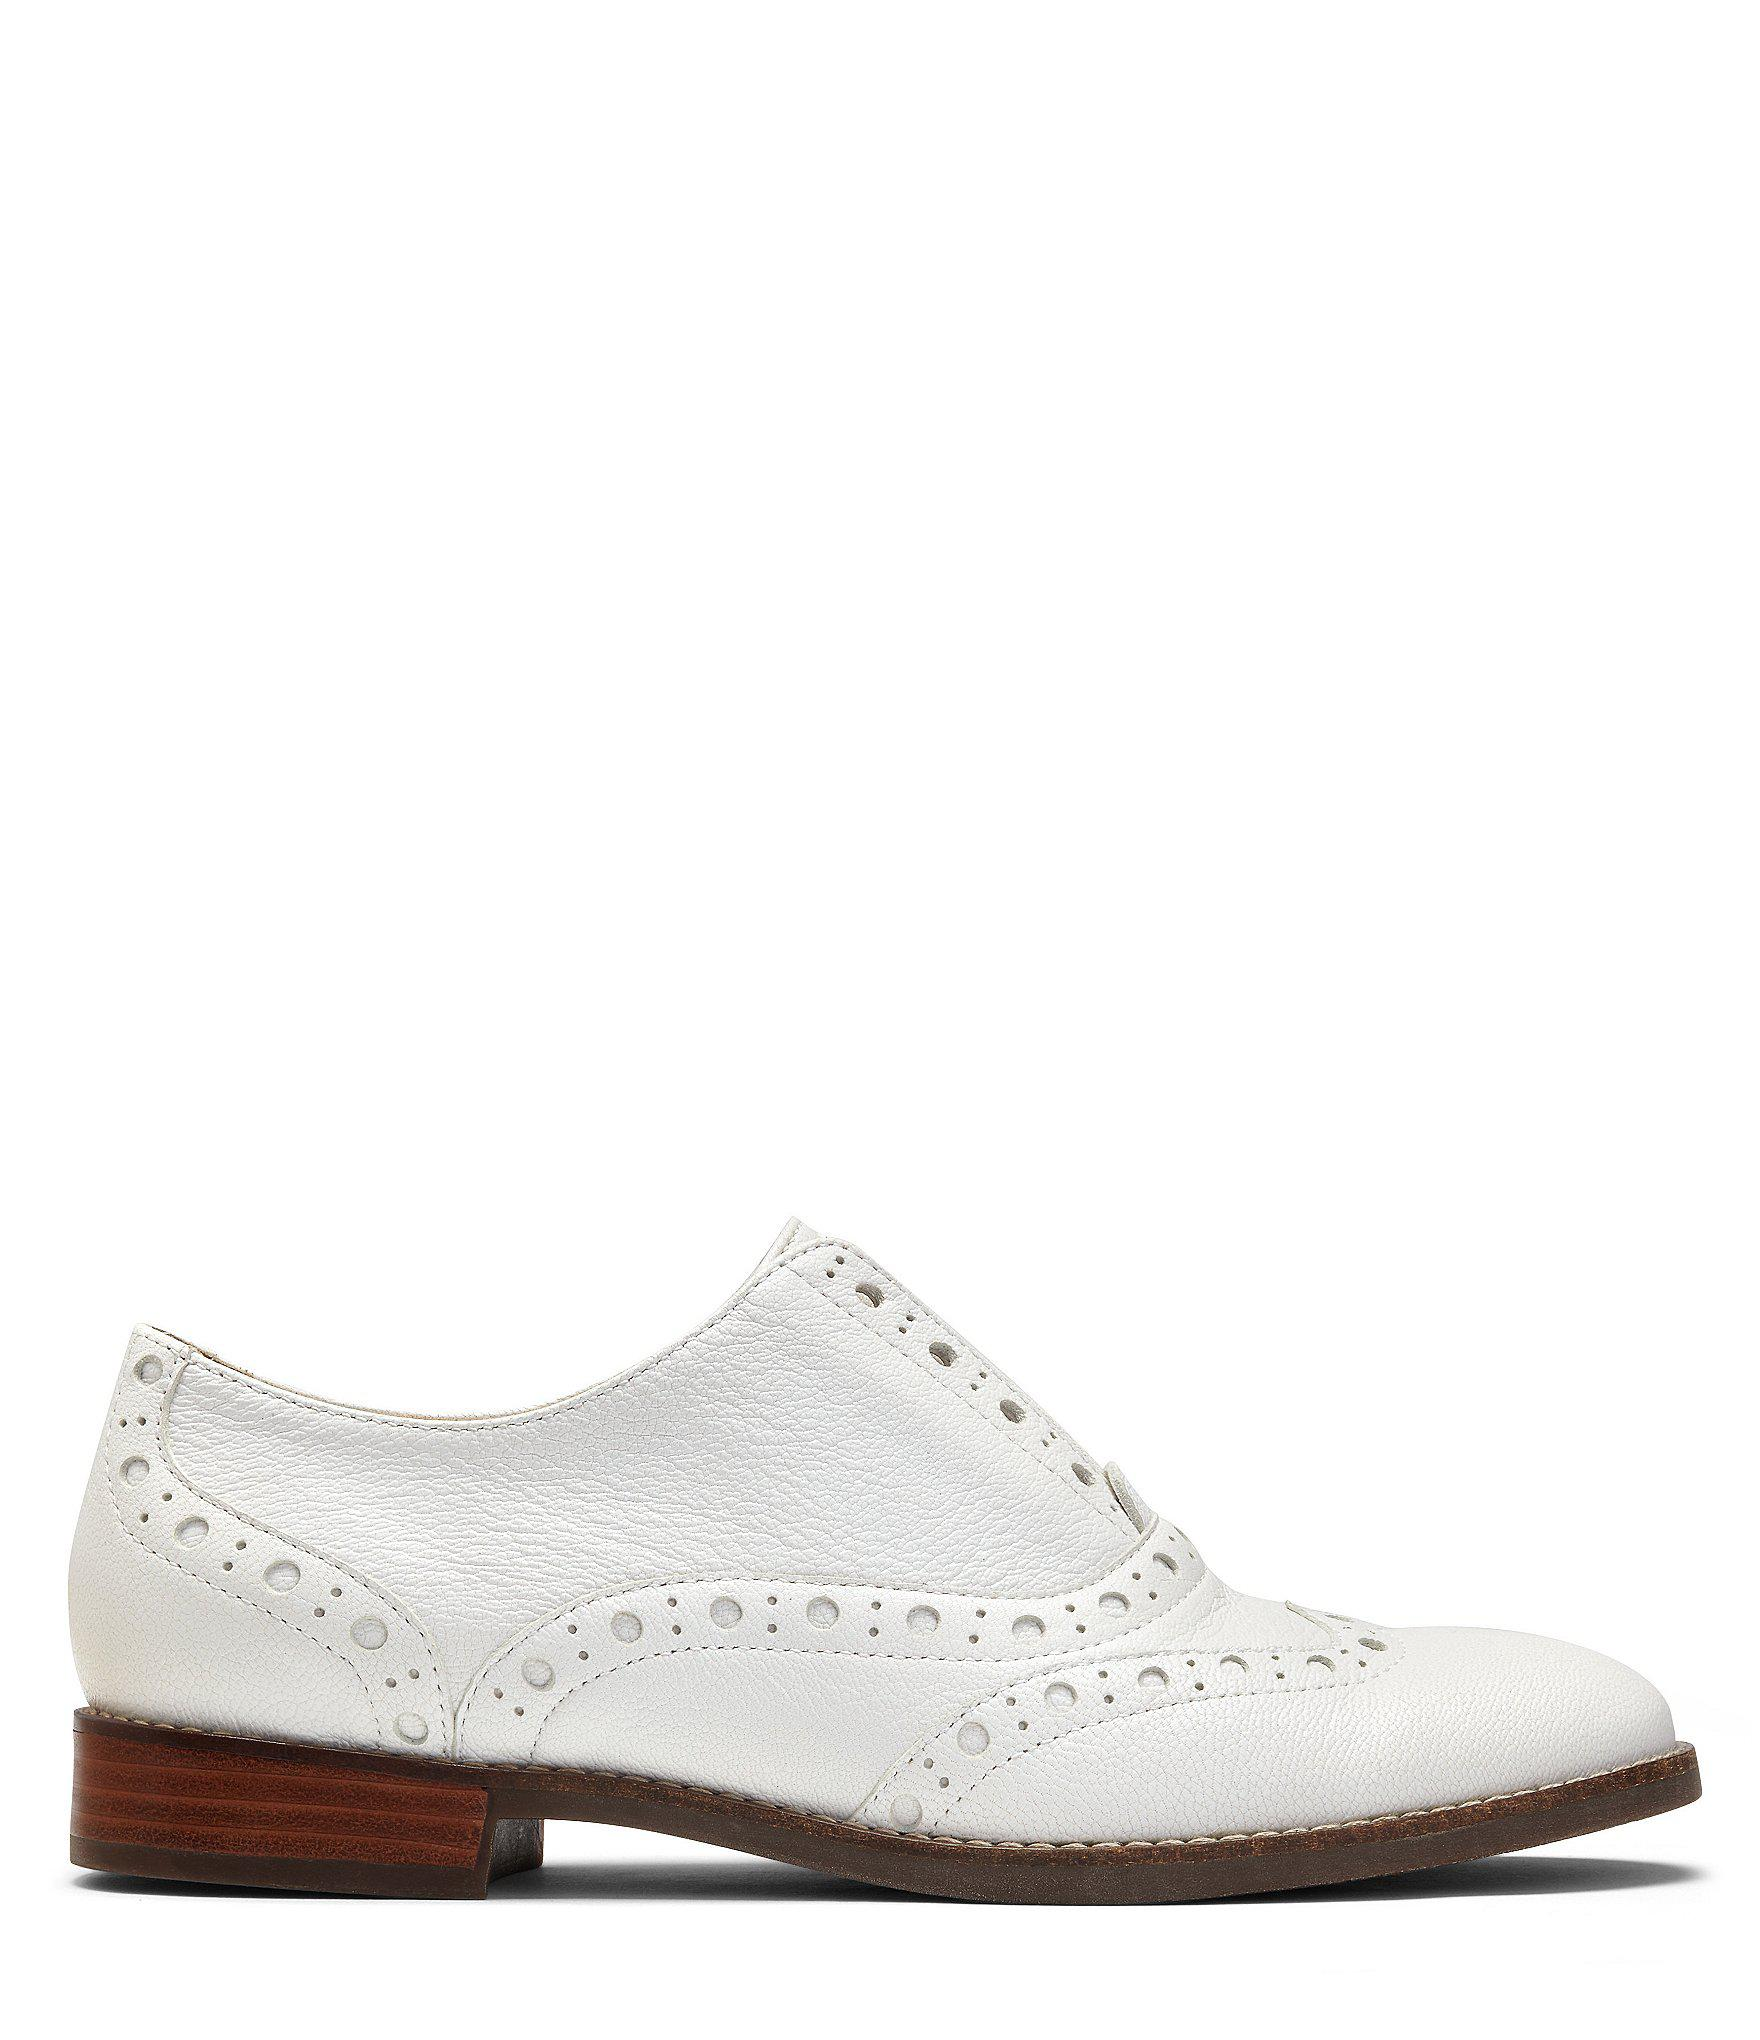 6696b03e1d2 Vionic Wise Hadley Leather Wingtip Oxfords in White - Lyst